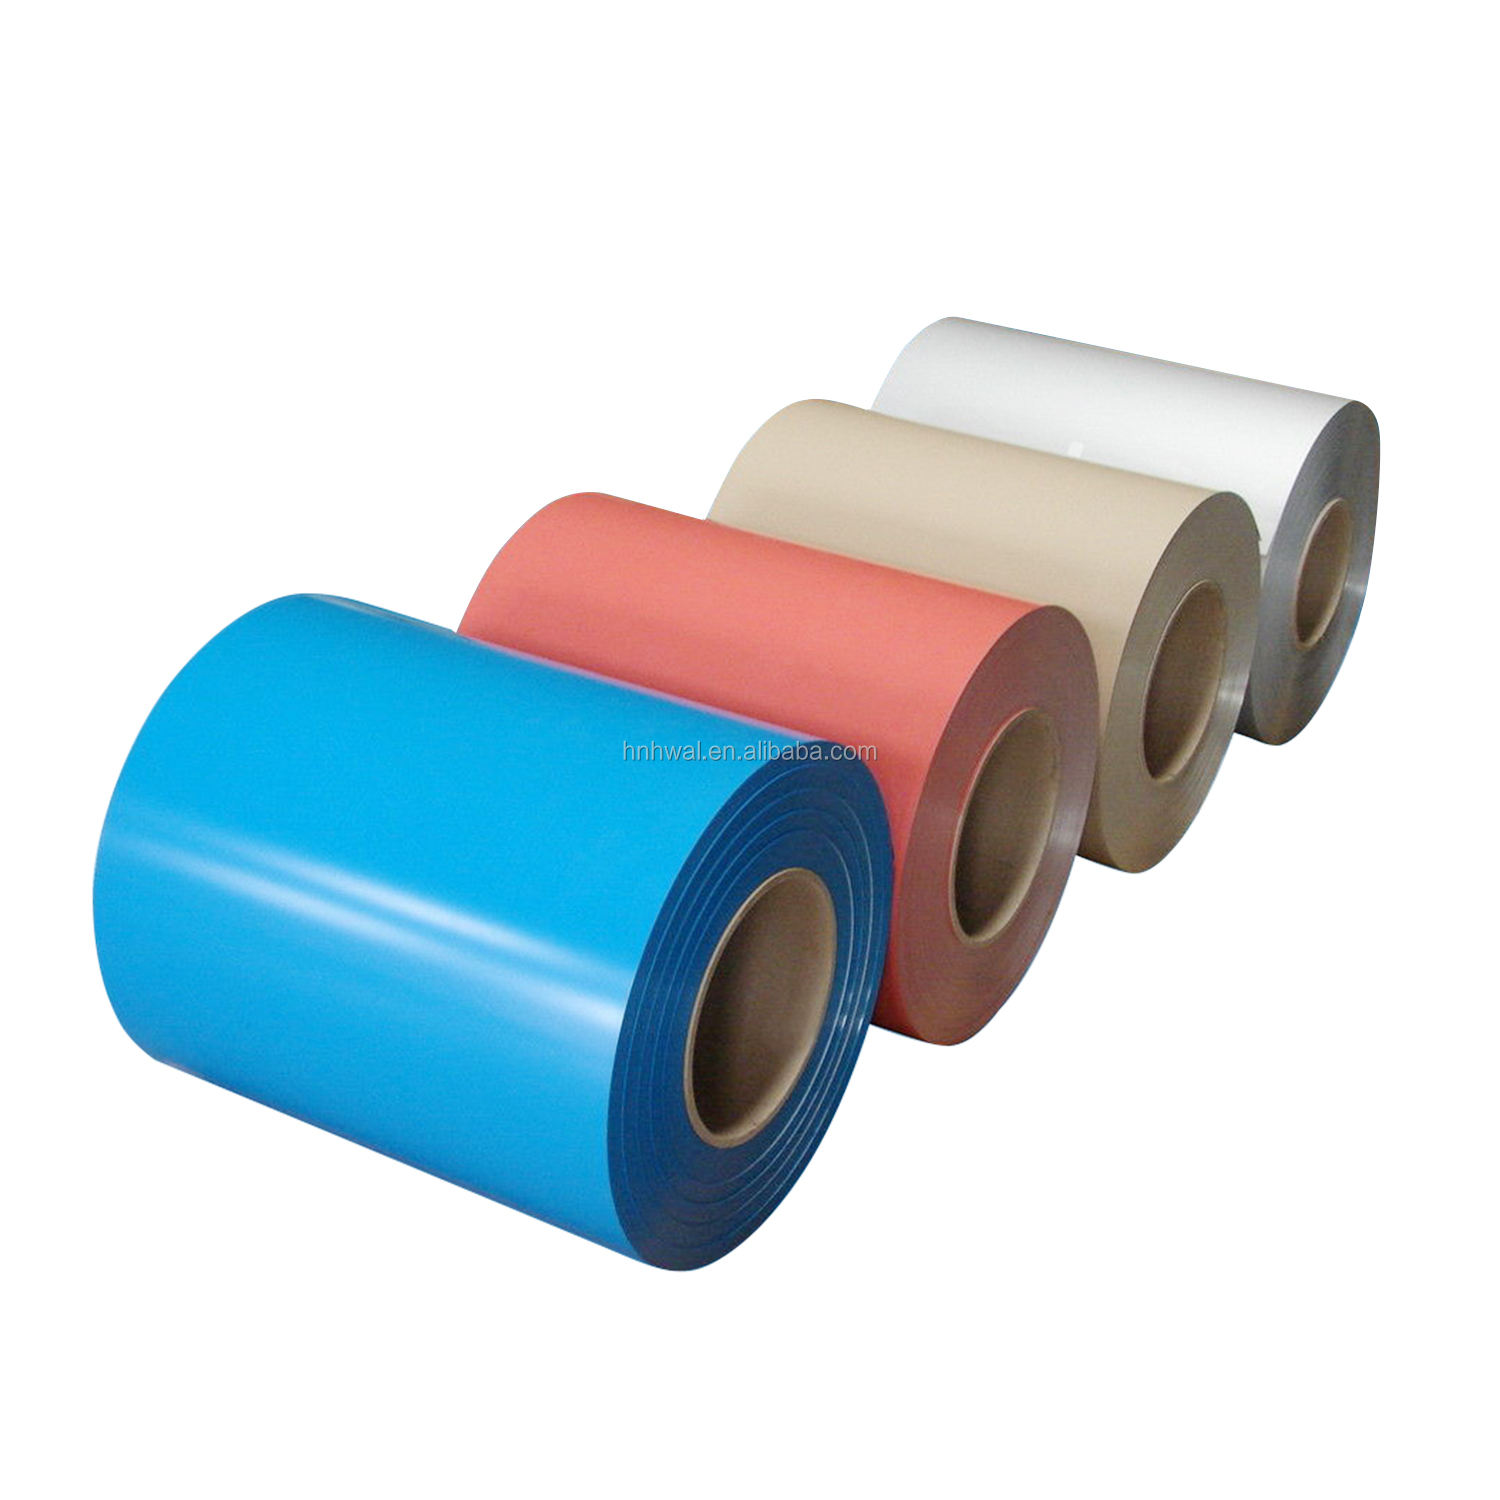 newest price wholesale color coated aluminium sheet roll aluminum coil for aluminum caps